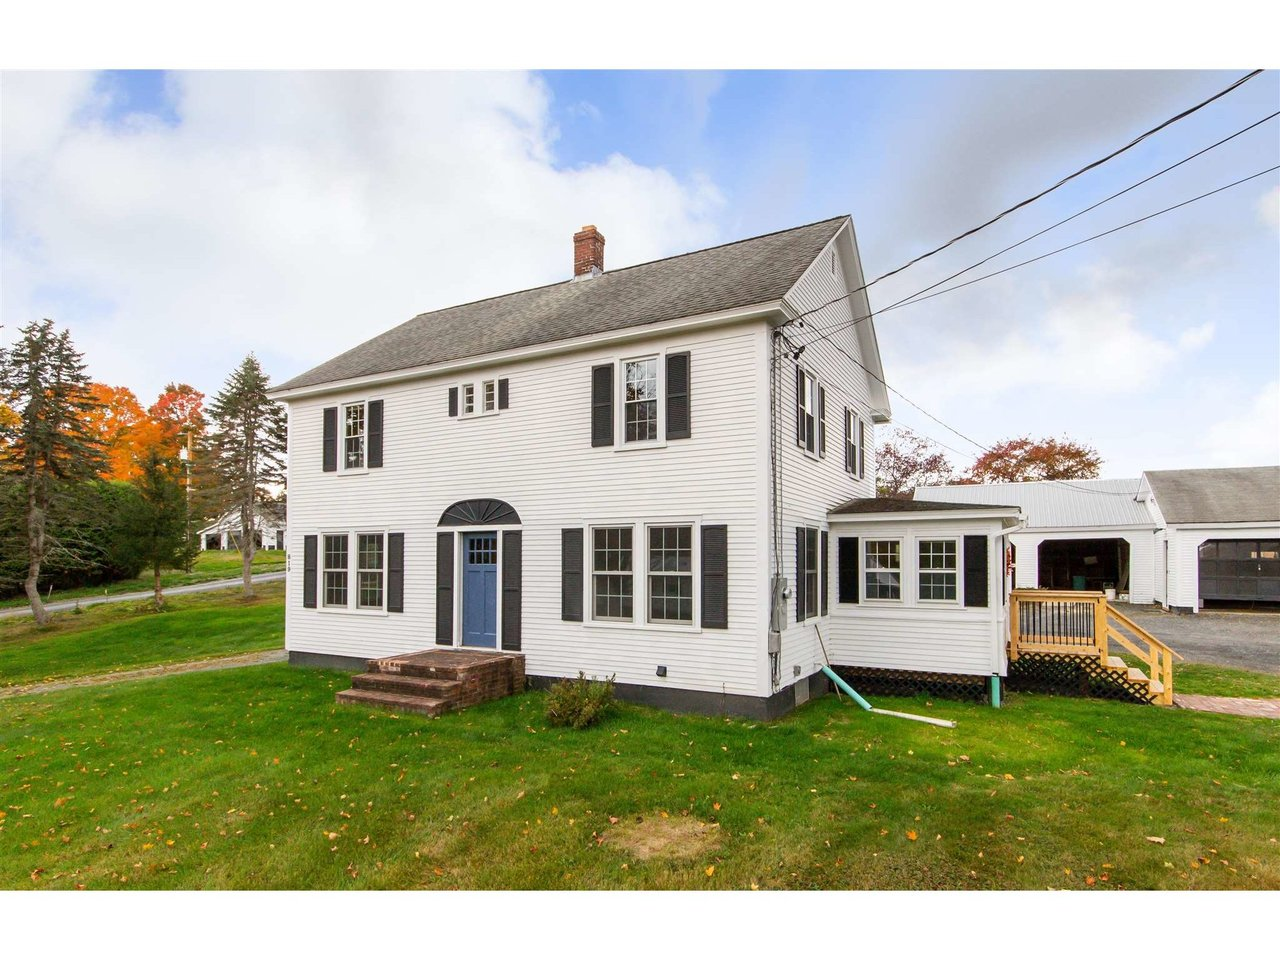 Sold property in Waterbury